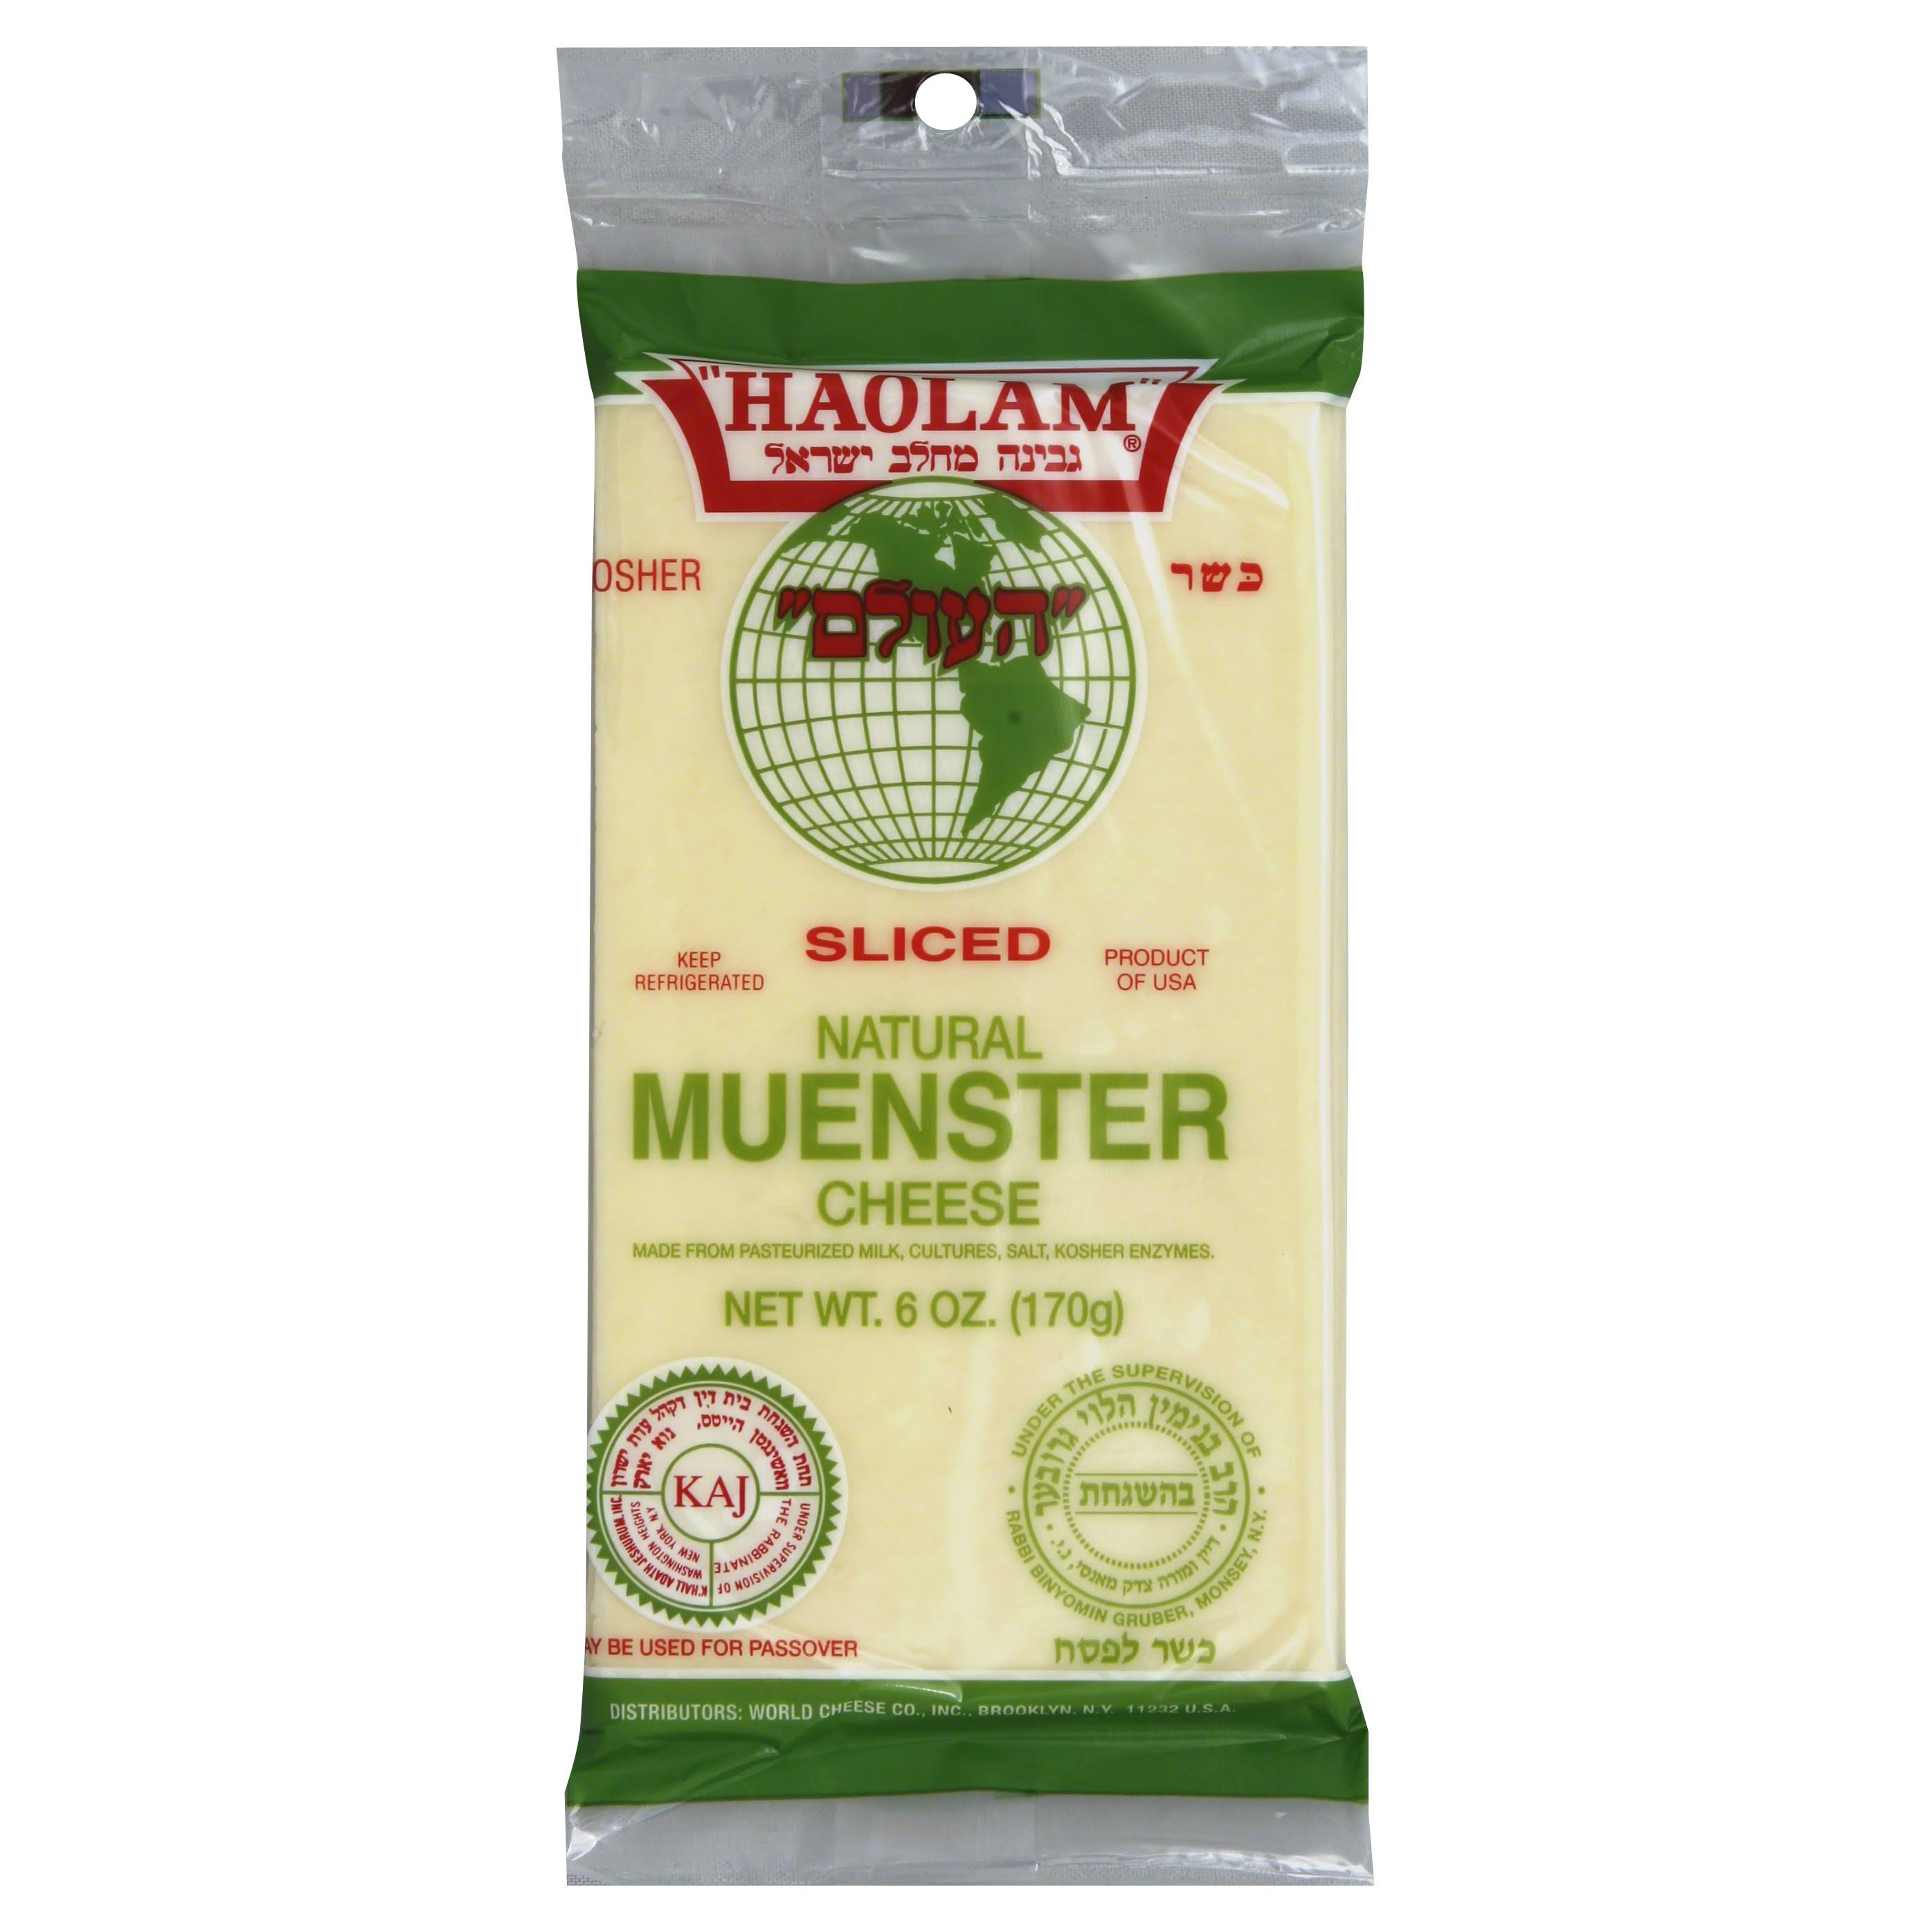 Haolam Sliced Cheese, Muenster - 6 oz